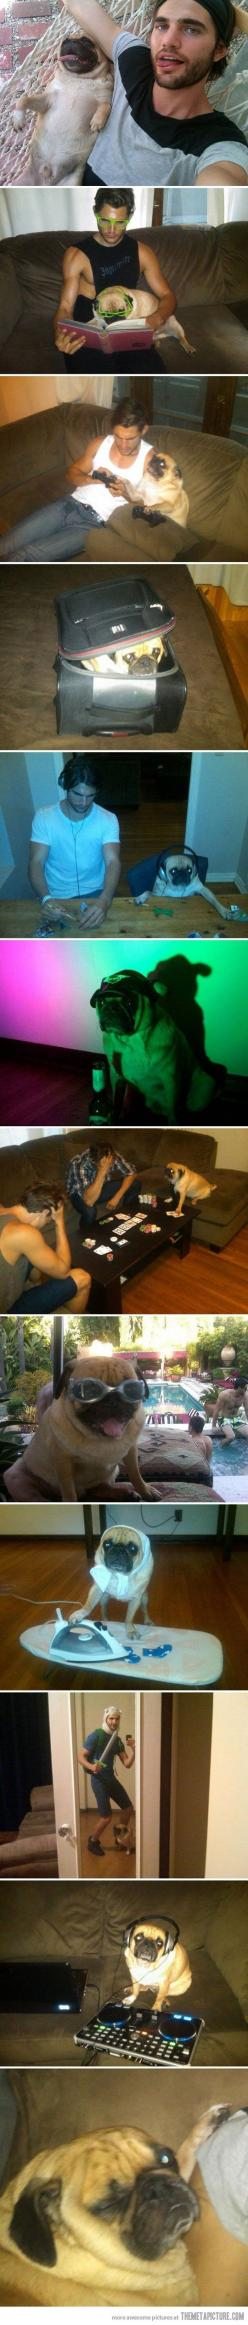 WAY too much time on their hands.: Best Friends, Adventure Time, Guy, Pug Life, Pugs, Photogenic Pug, Dog, Animal